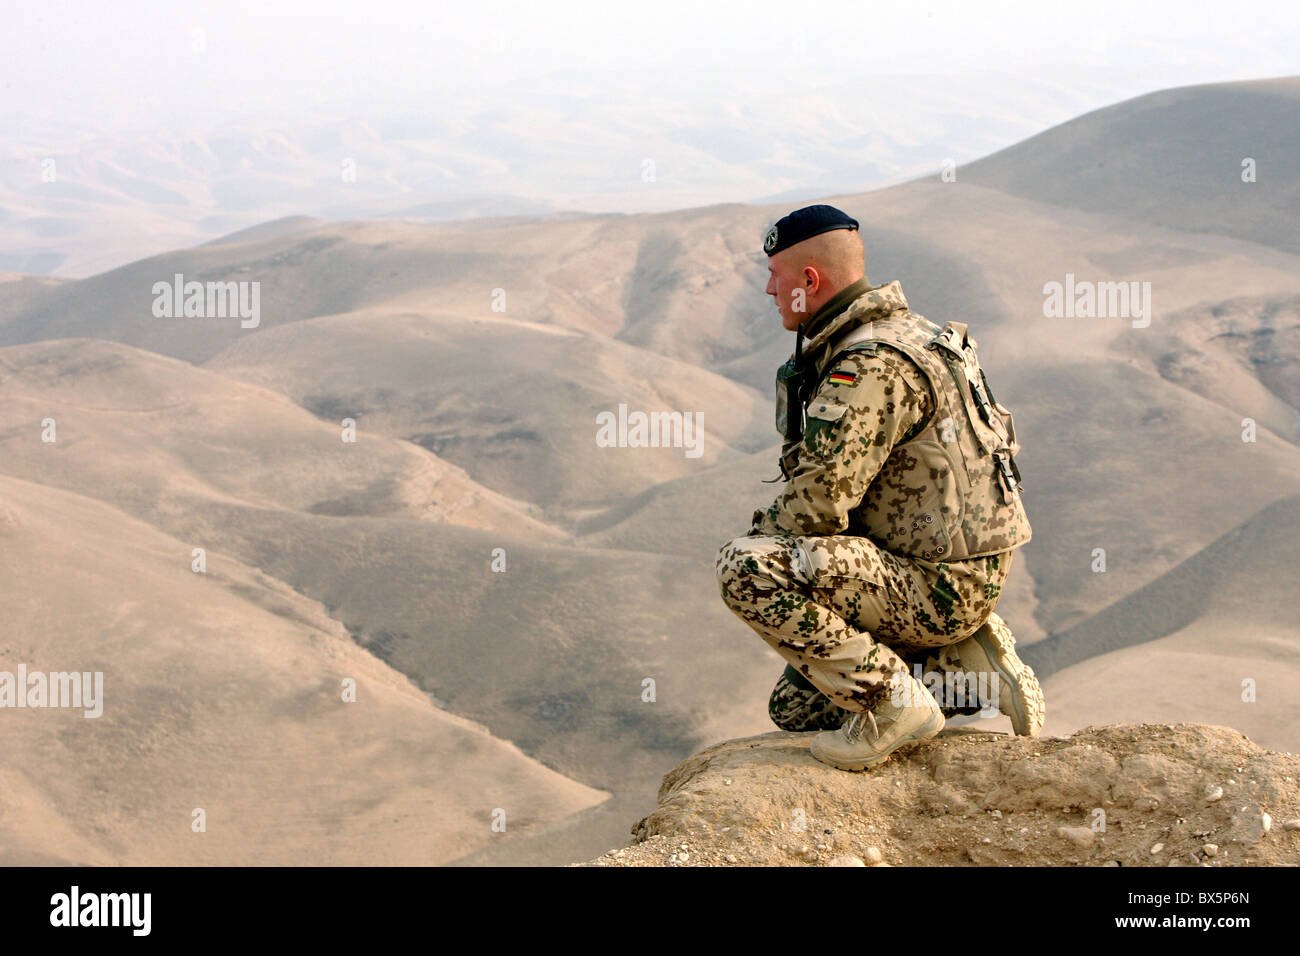 A Bundeswehr soldier of the ISAF patrol, Mazar-e Sharif, Afghanistan - Stock Image